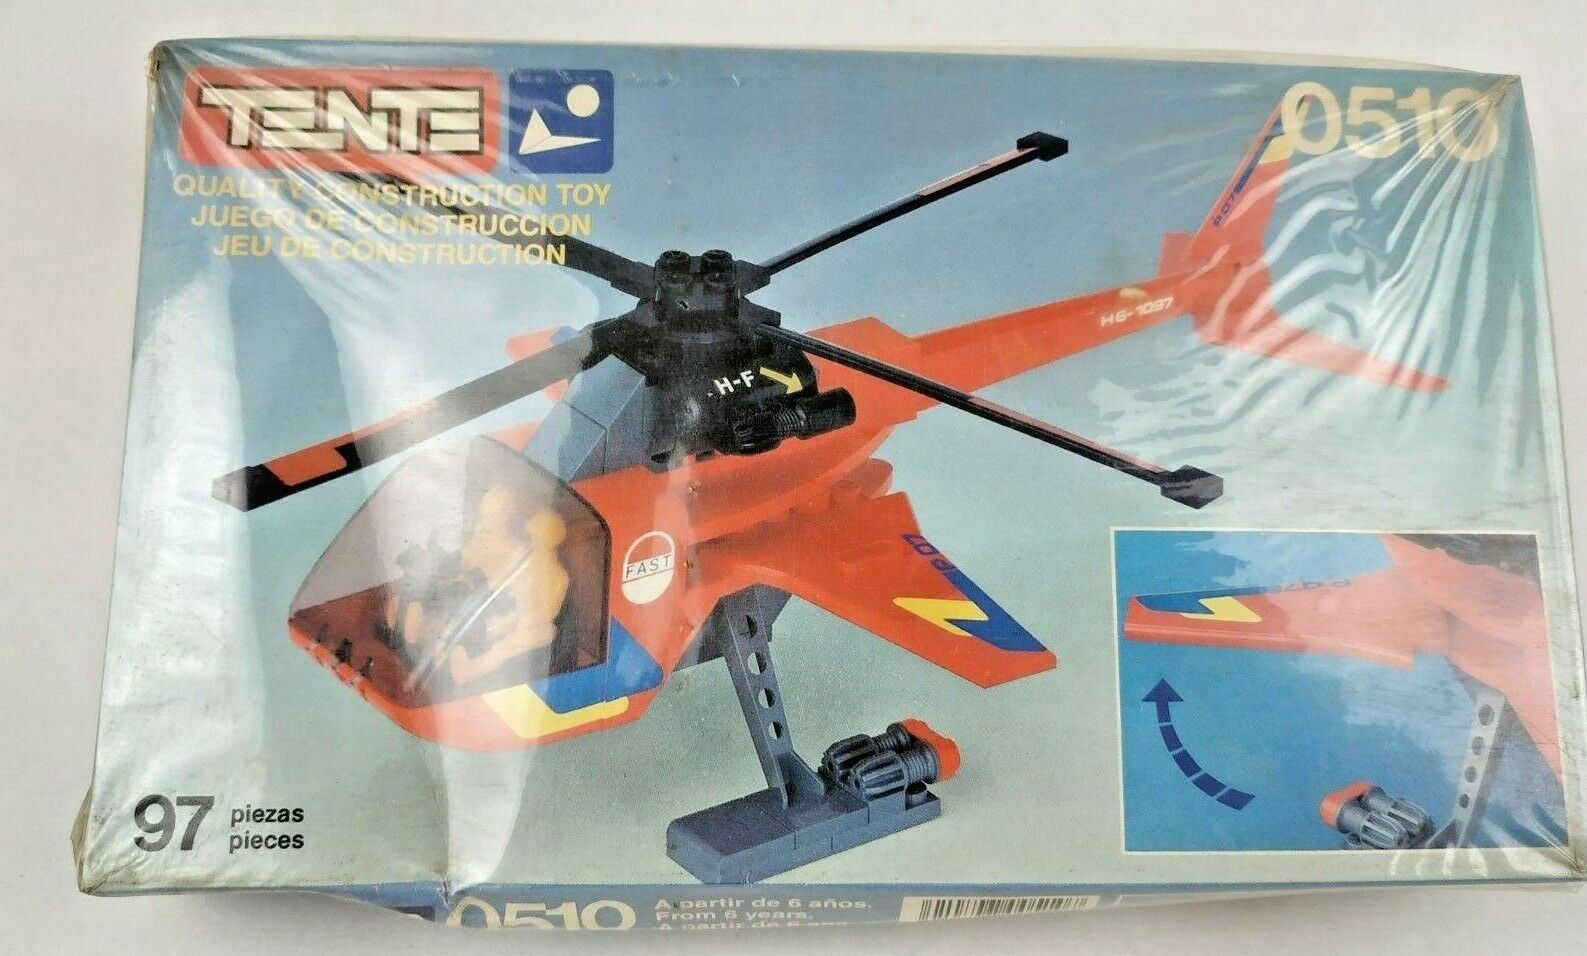 VERY RARE VINTAGE TENTE EXIN 0510 HELICOPTER HELICOPTER HELICOPTER 97 PCS NEW   a312fd